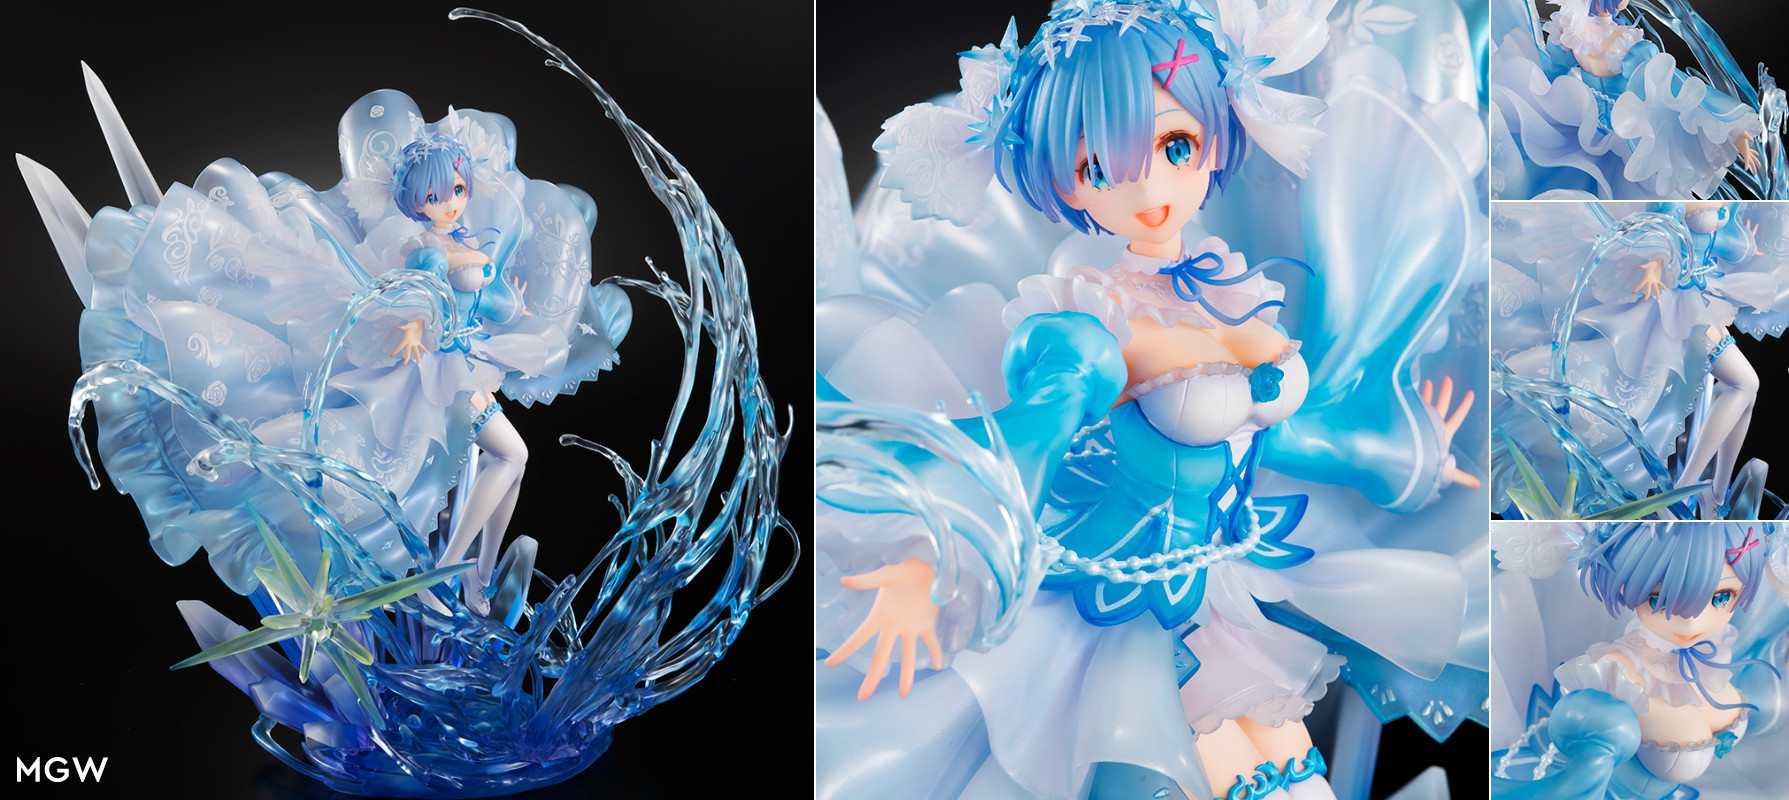 Rem Crystal Dress Ver. by SHIBUYA STREAM FIGURE from ReZERO Starting Life in Another World